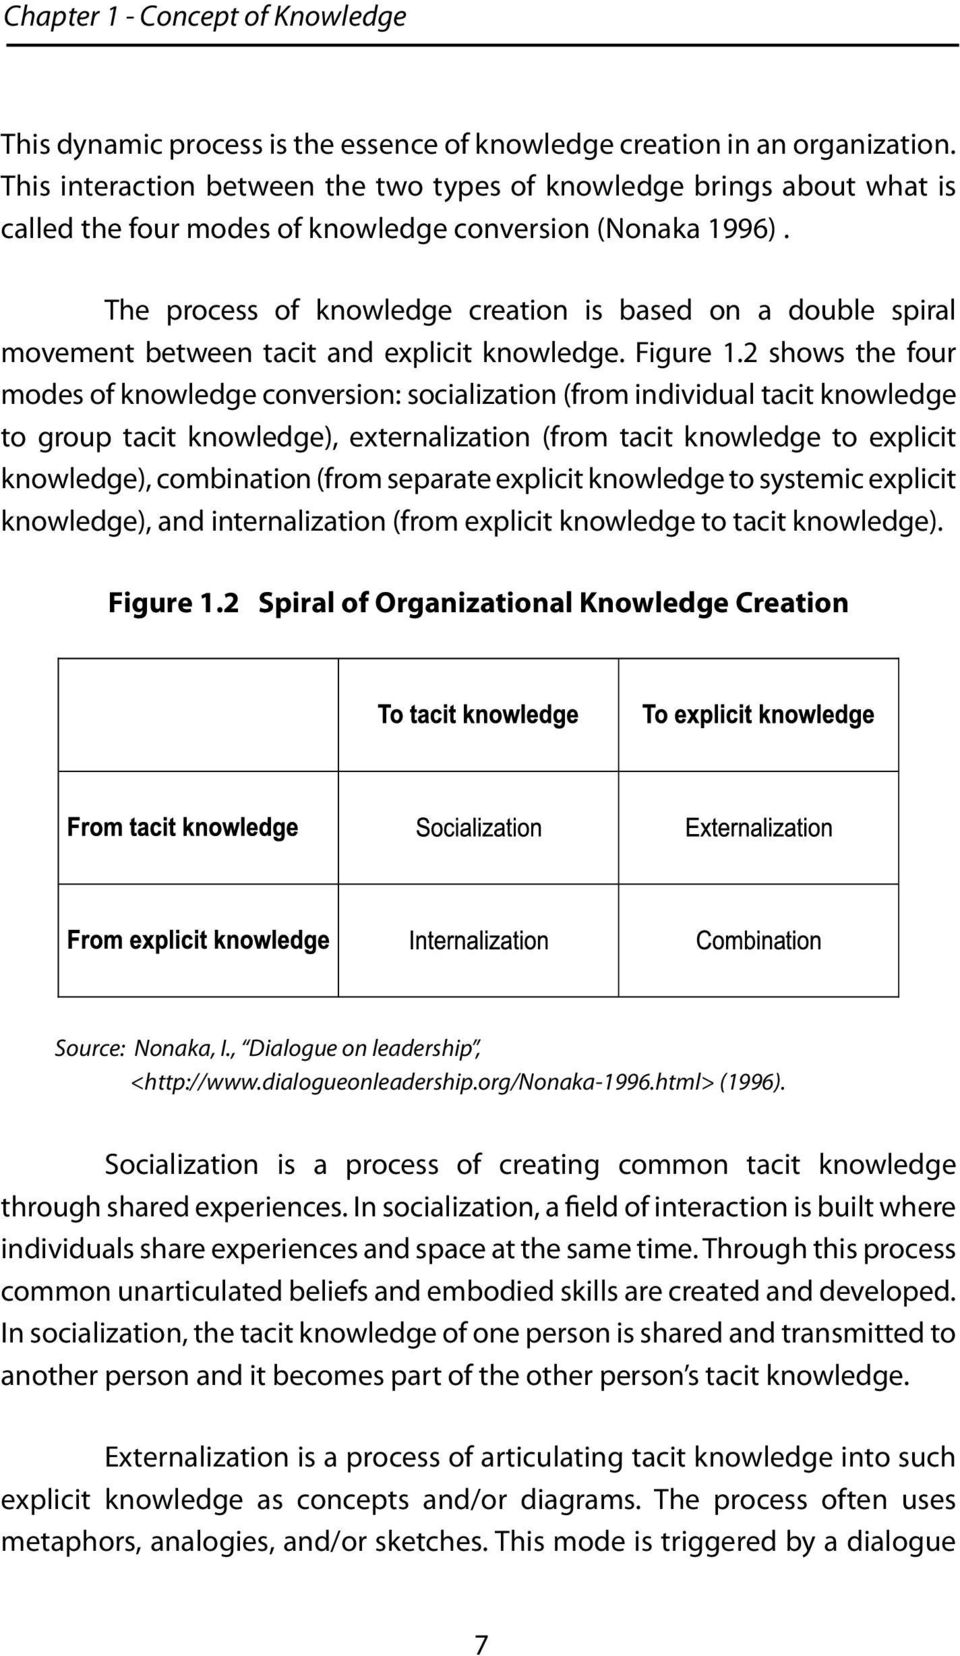 The process of knowledge creation is based on a double spiral movement between tacit and explicit knowledge. Figure 1.